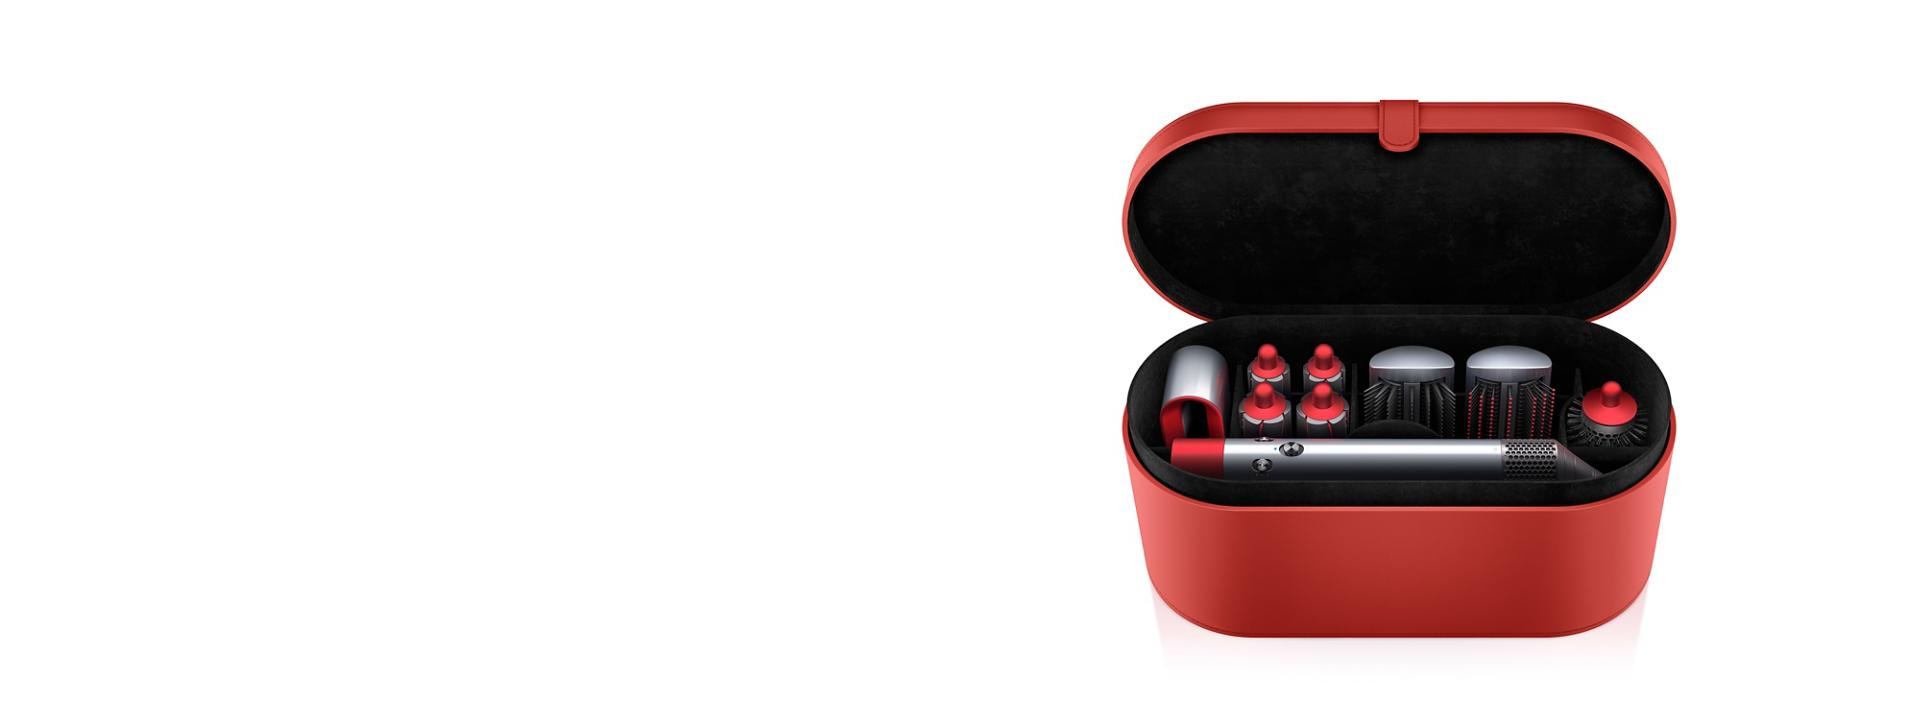 Red edition Dyson airwrap with case